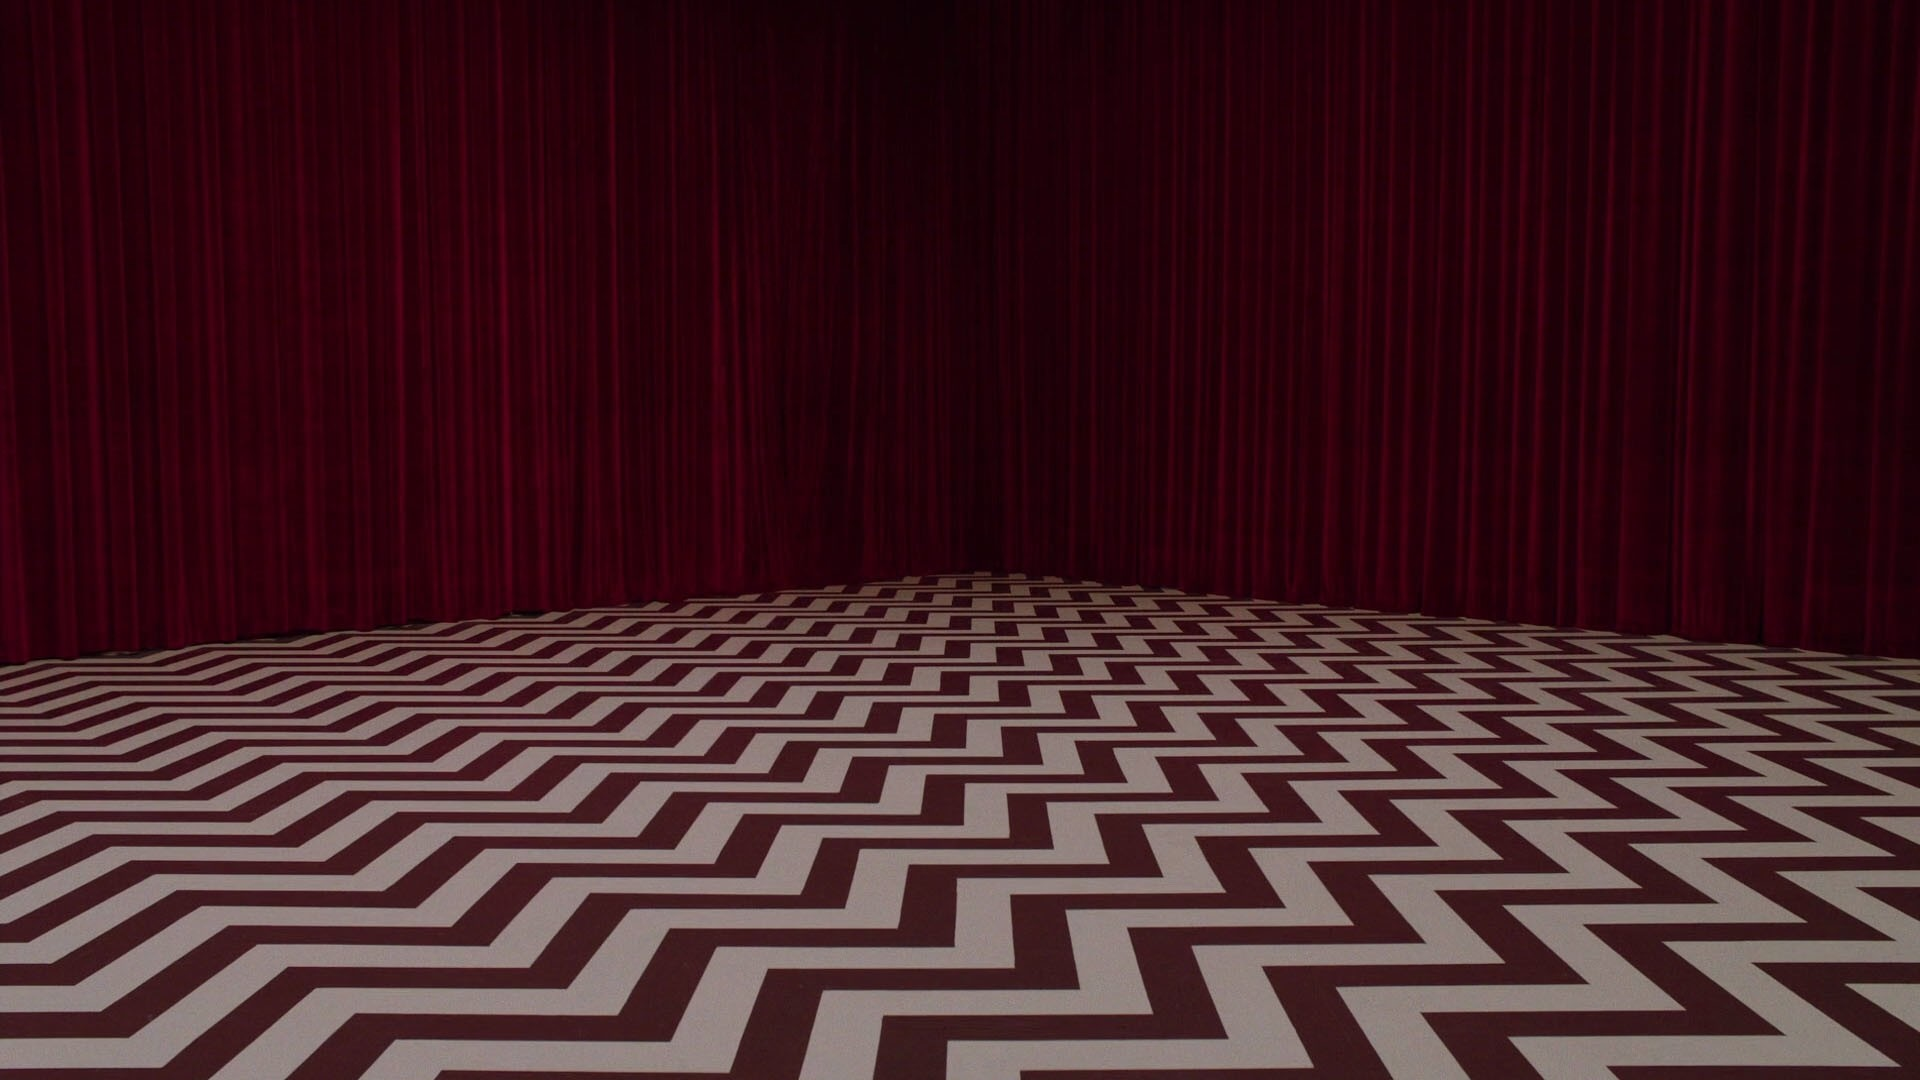 81 Twin Peaks Wallpapers on WallpaperPlay 1920x1080